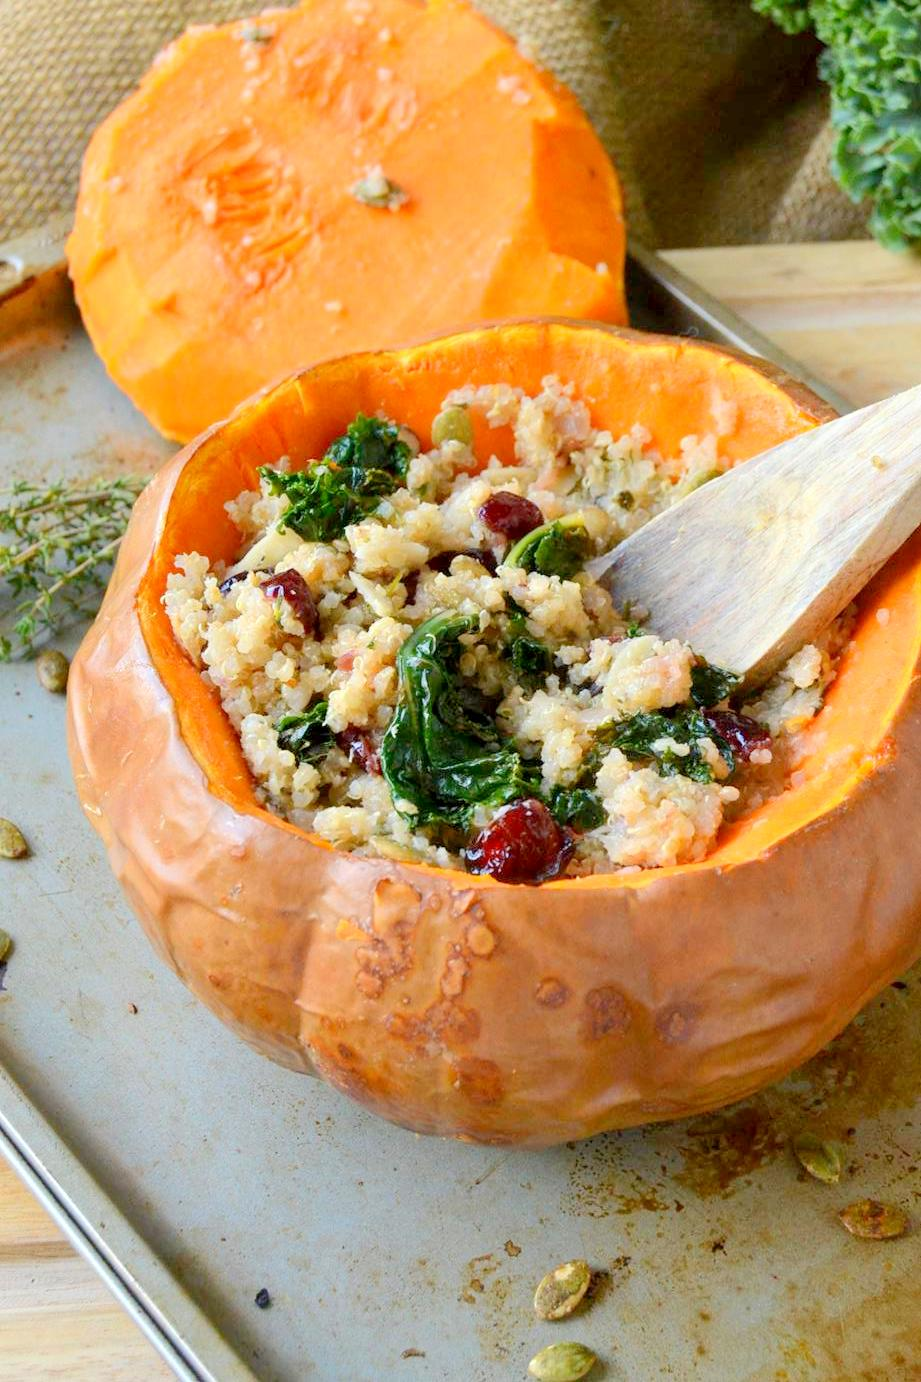 Tattooed Martha - Quinoa Cranberry Stuffing in Butterkin Squash (9)